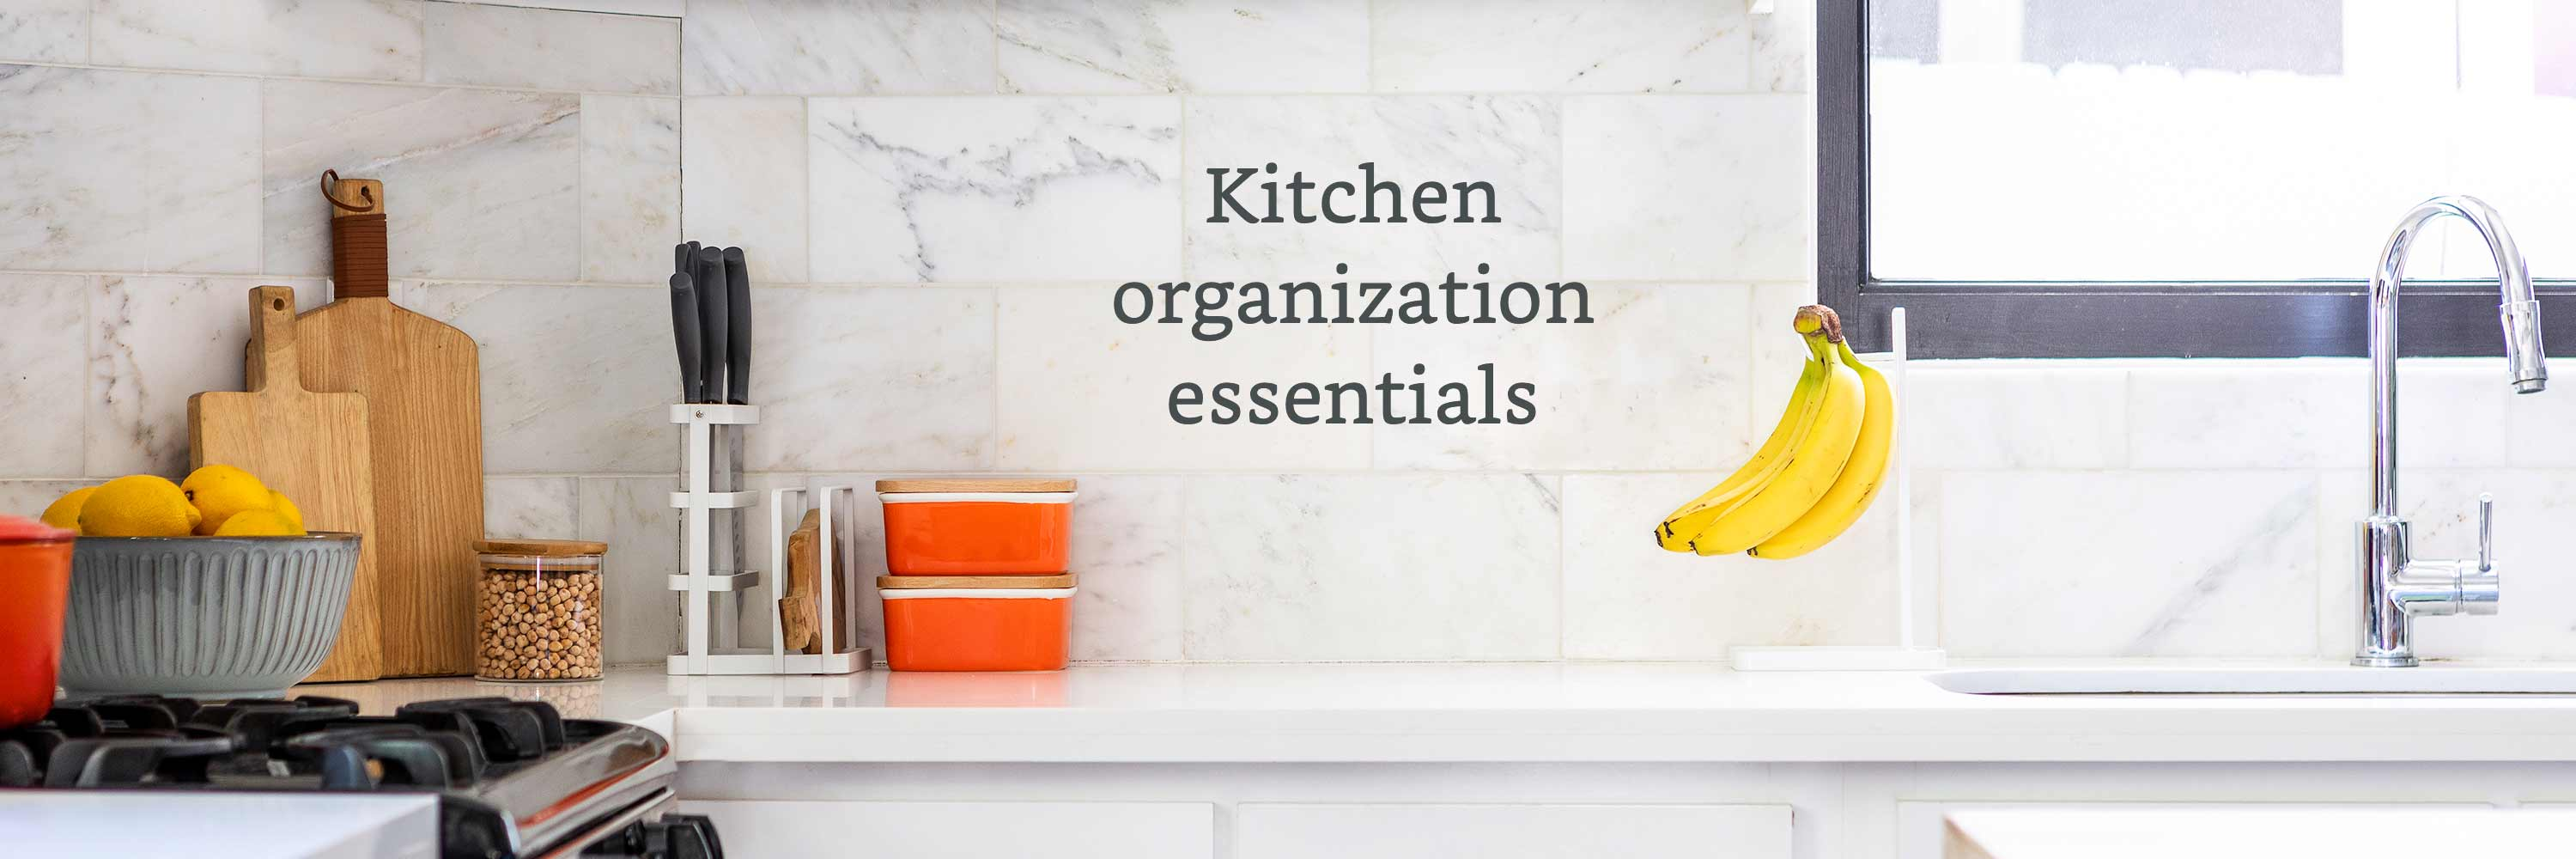 Kitchen organization essentials